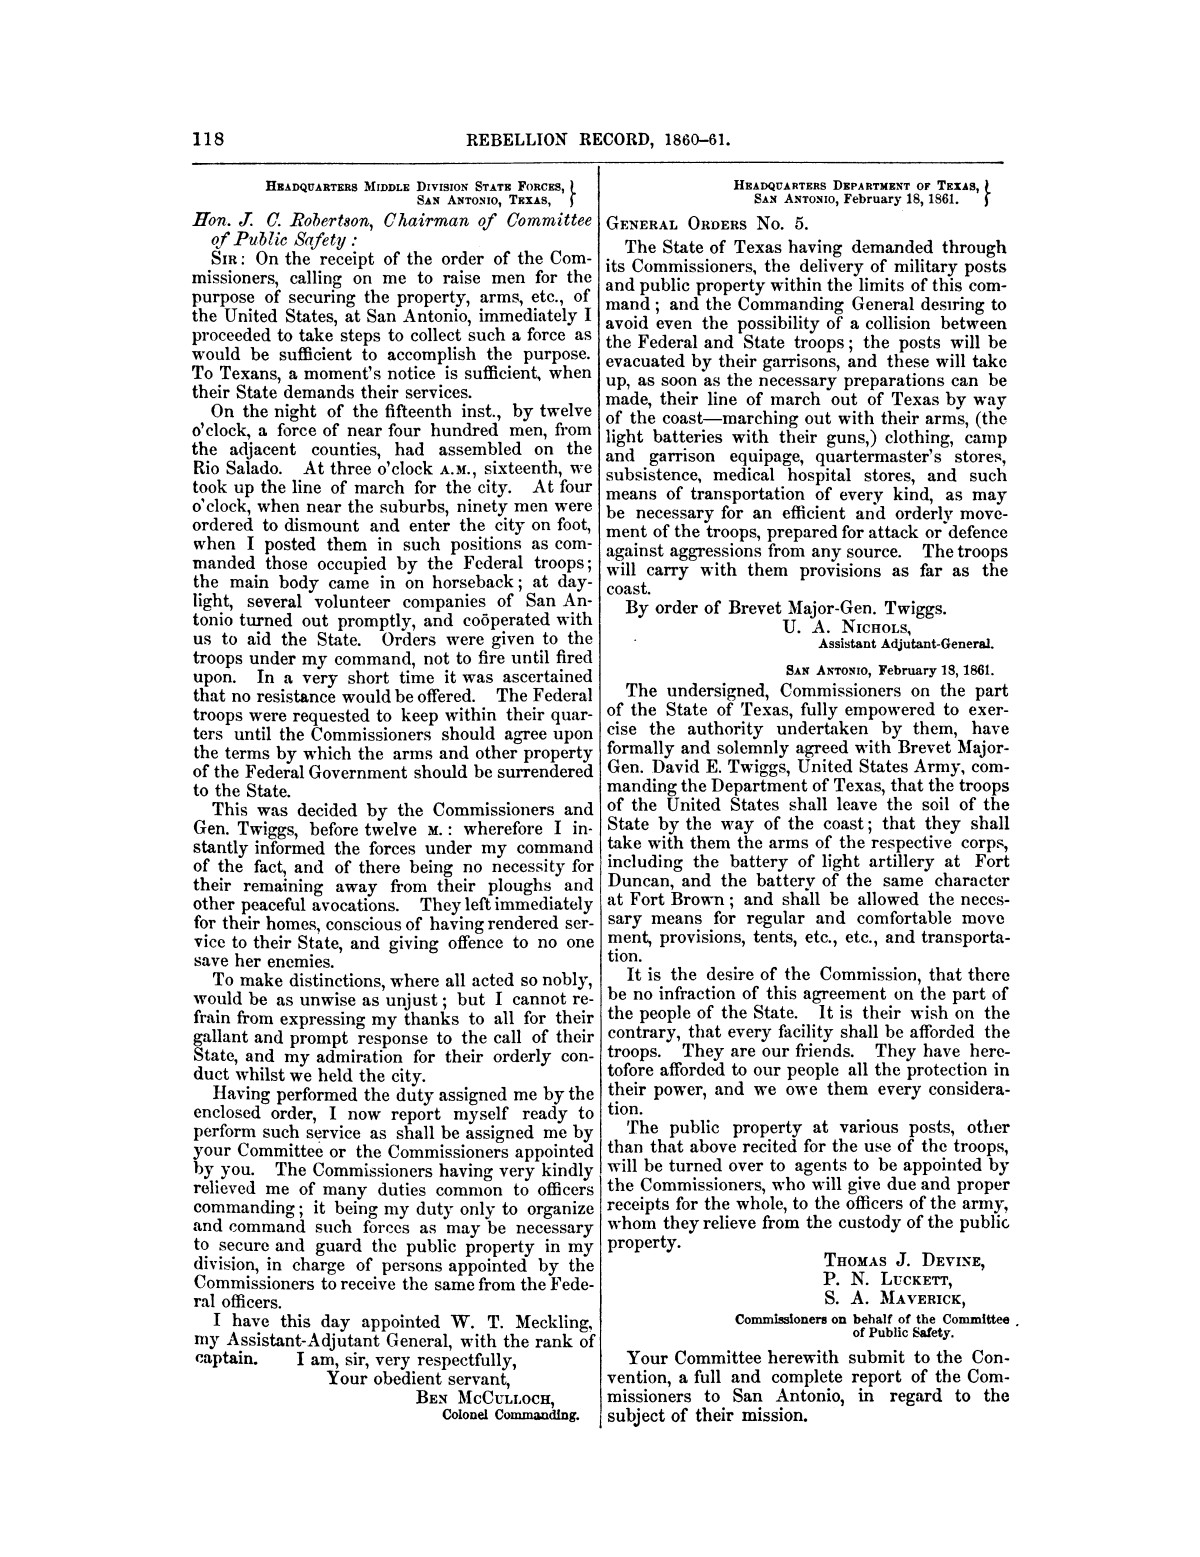 The treachery in Texas, the secession of Texas, and the arrest of the United States officers and soldiers serving in Texas. Read before the New-York Historical Society, June 25, 1861. By Major J. T. Sprague, U. S. A.                                                                                                      [Sequence #]: 12 of 36